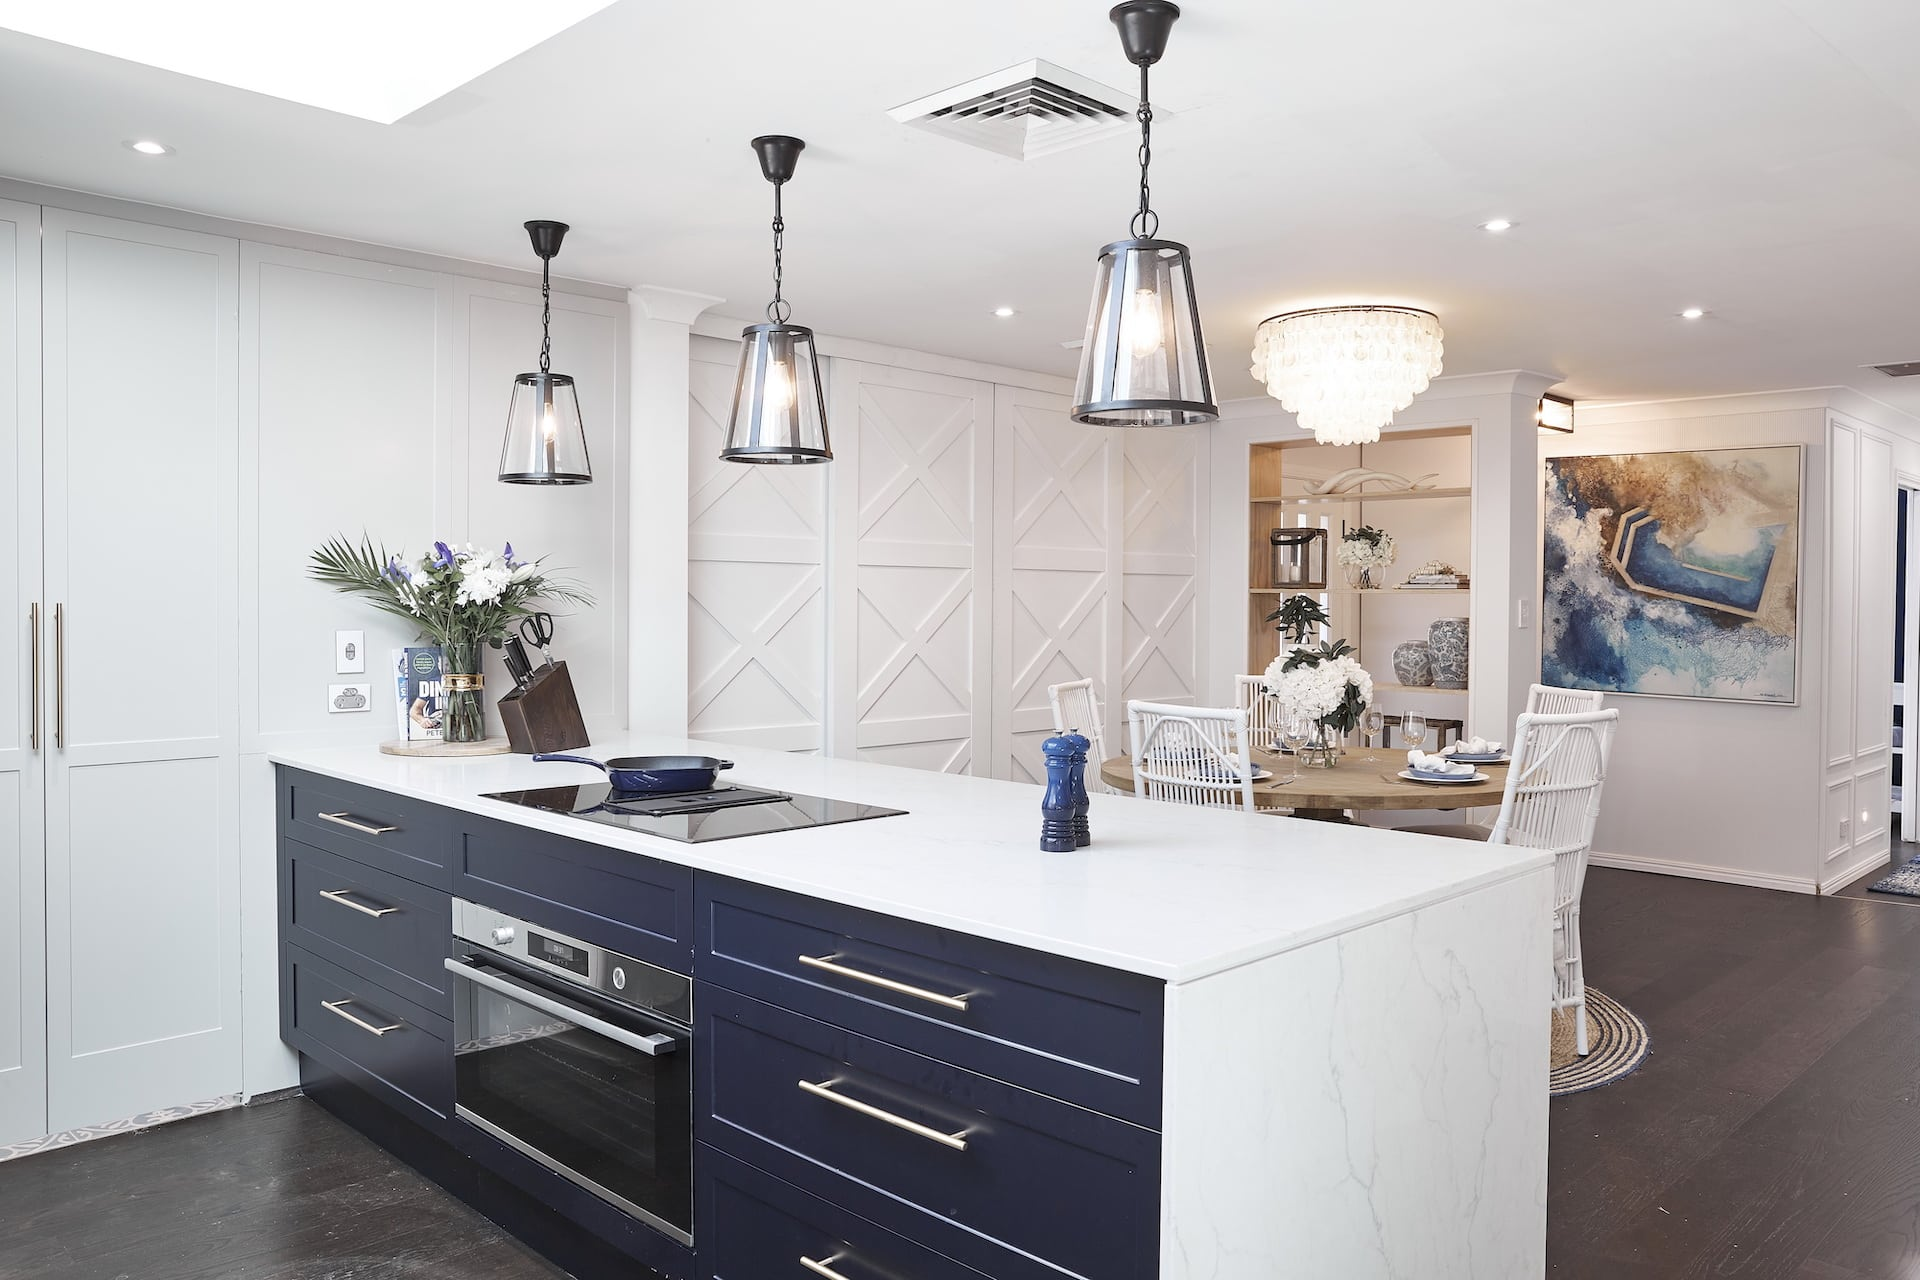 house rules 2020 lenore hamptons kitchen with navy blue cabinets